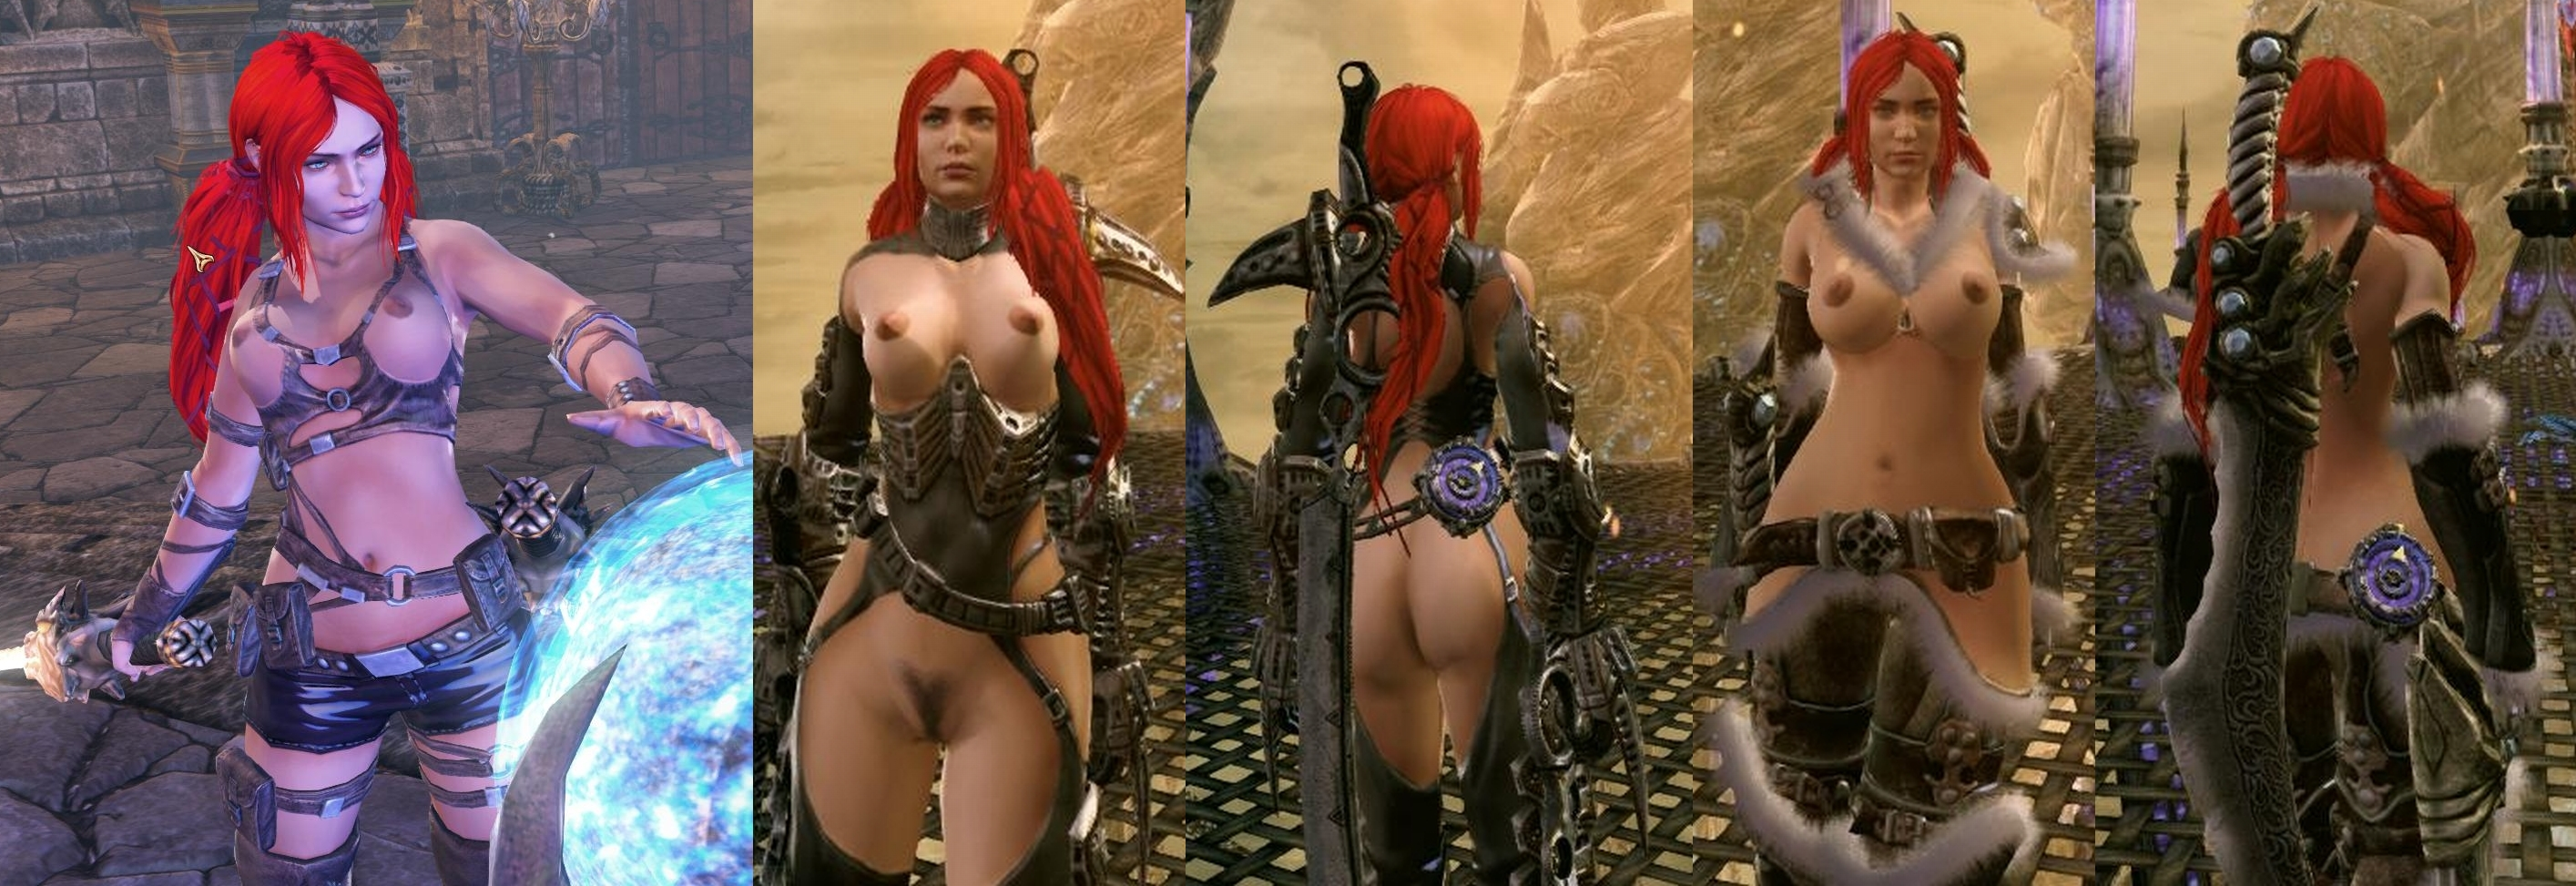 Brutal legend nude mod pornos video